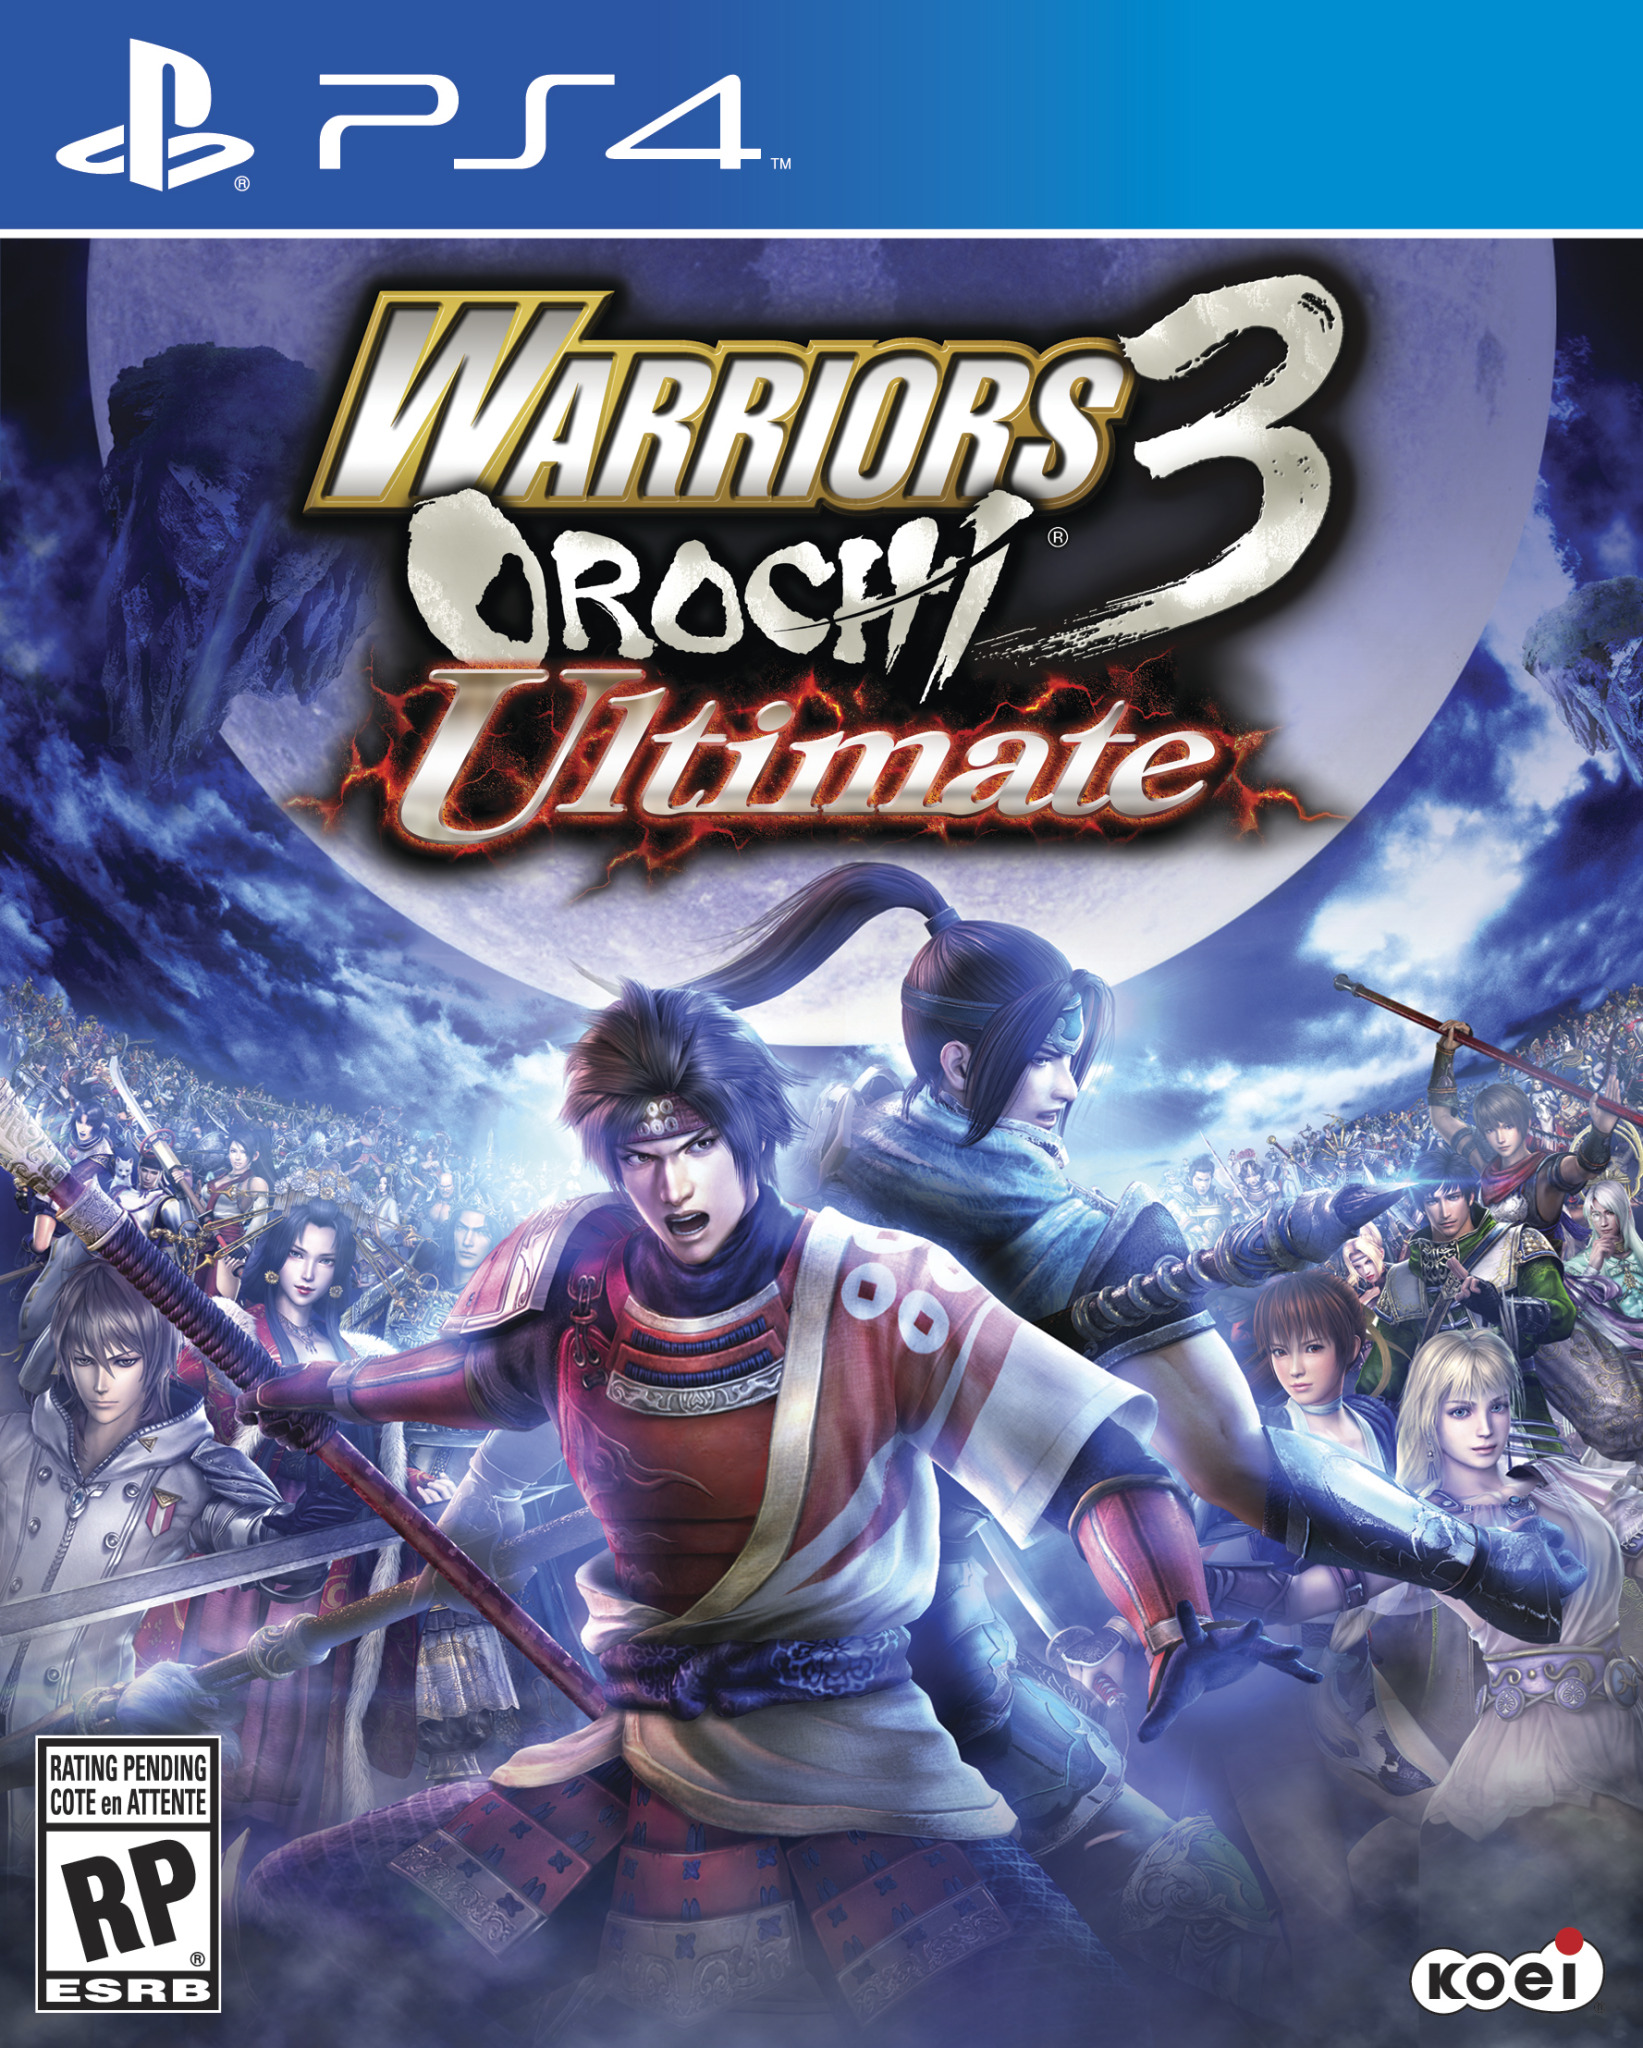 Warriors Orochi 4 Soul Calibur: Warriors Orochi 3 Ultimate Coming September 2 With Special